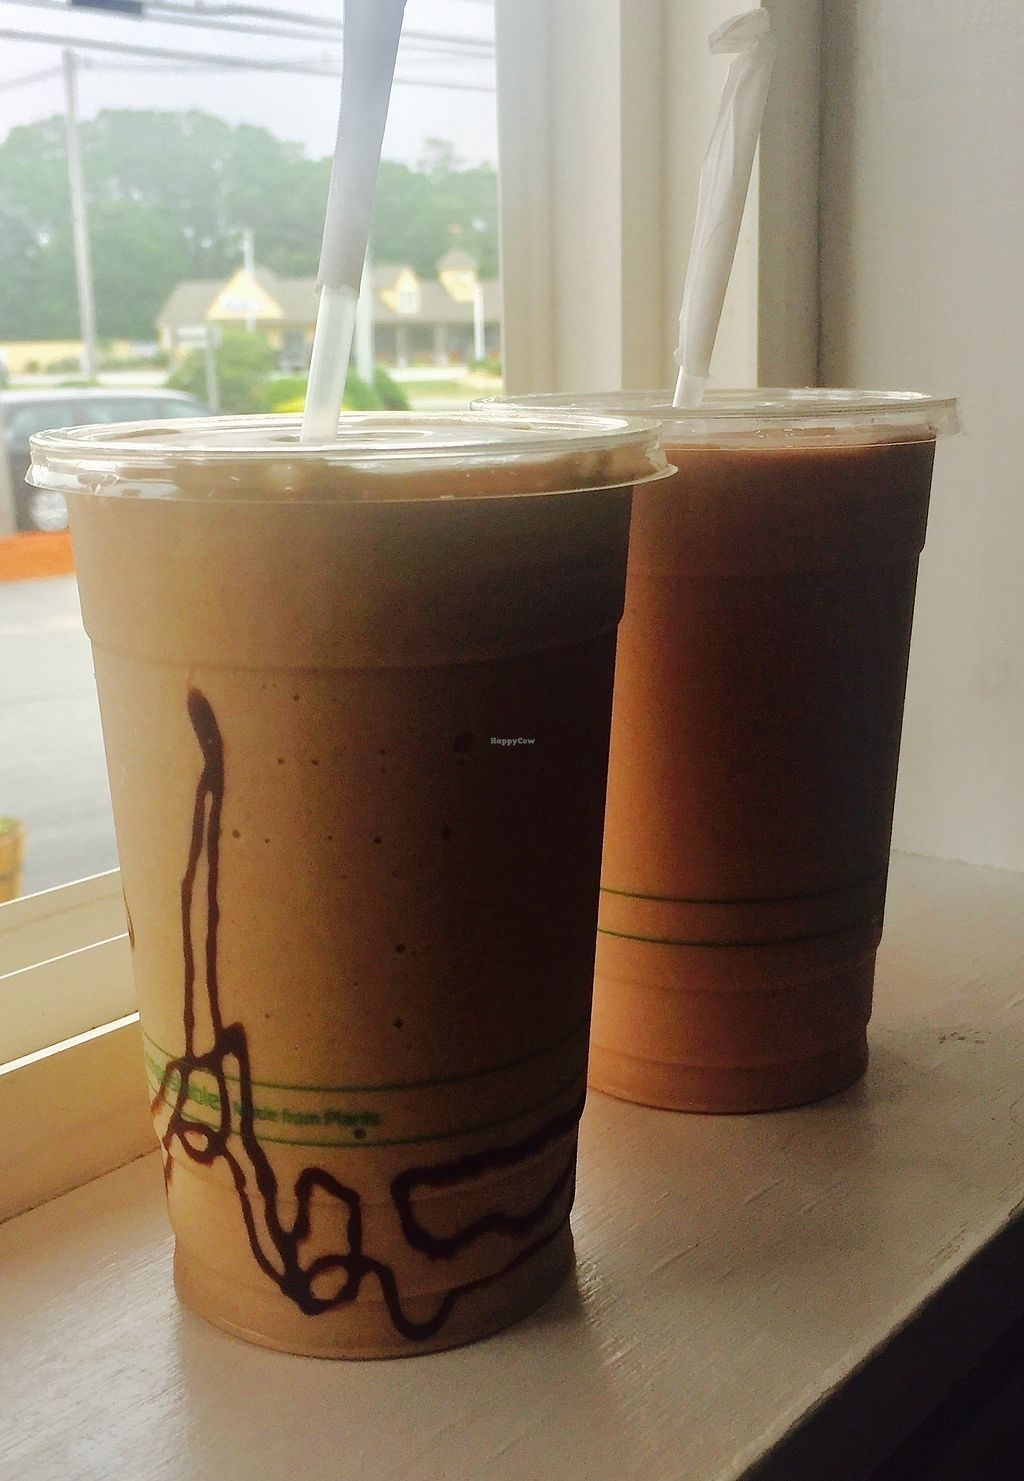 """Photo of Cycology Cafe  by <a href=""""/members/profile/Cycology"""">Cycology</a> <br/>Plant-based shakes and cups! <br/> July 13, 2017  - <a href='/contact/abuse/image/96155/280009'>Report</a>"""